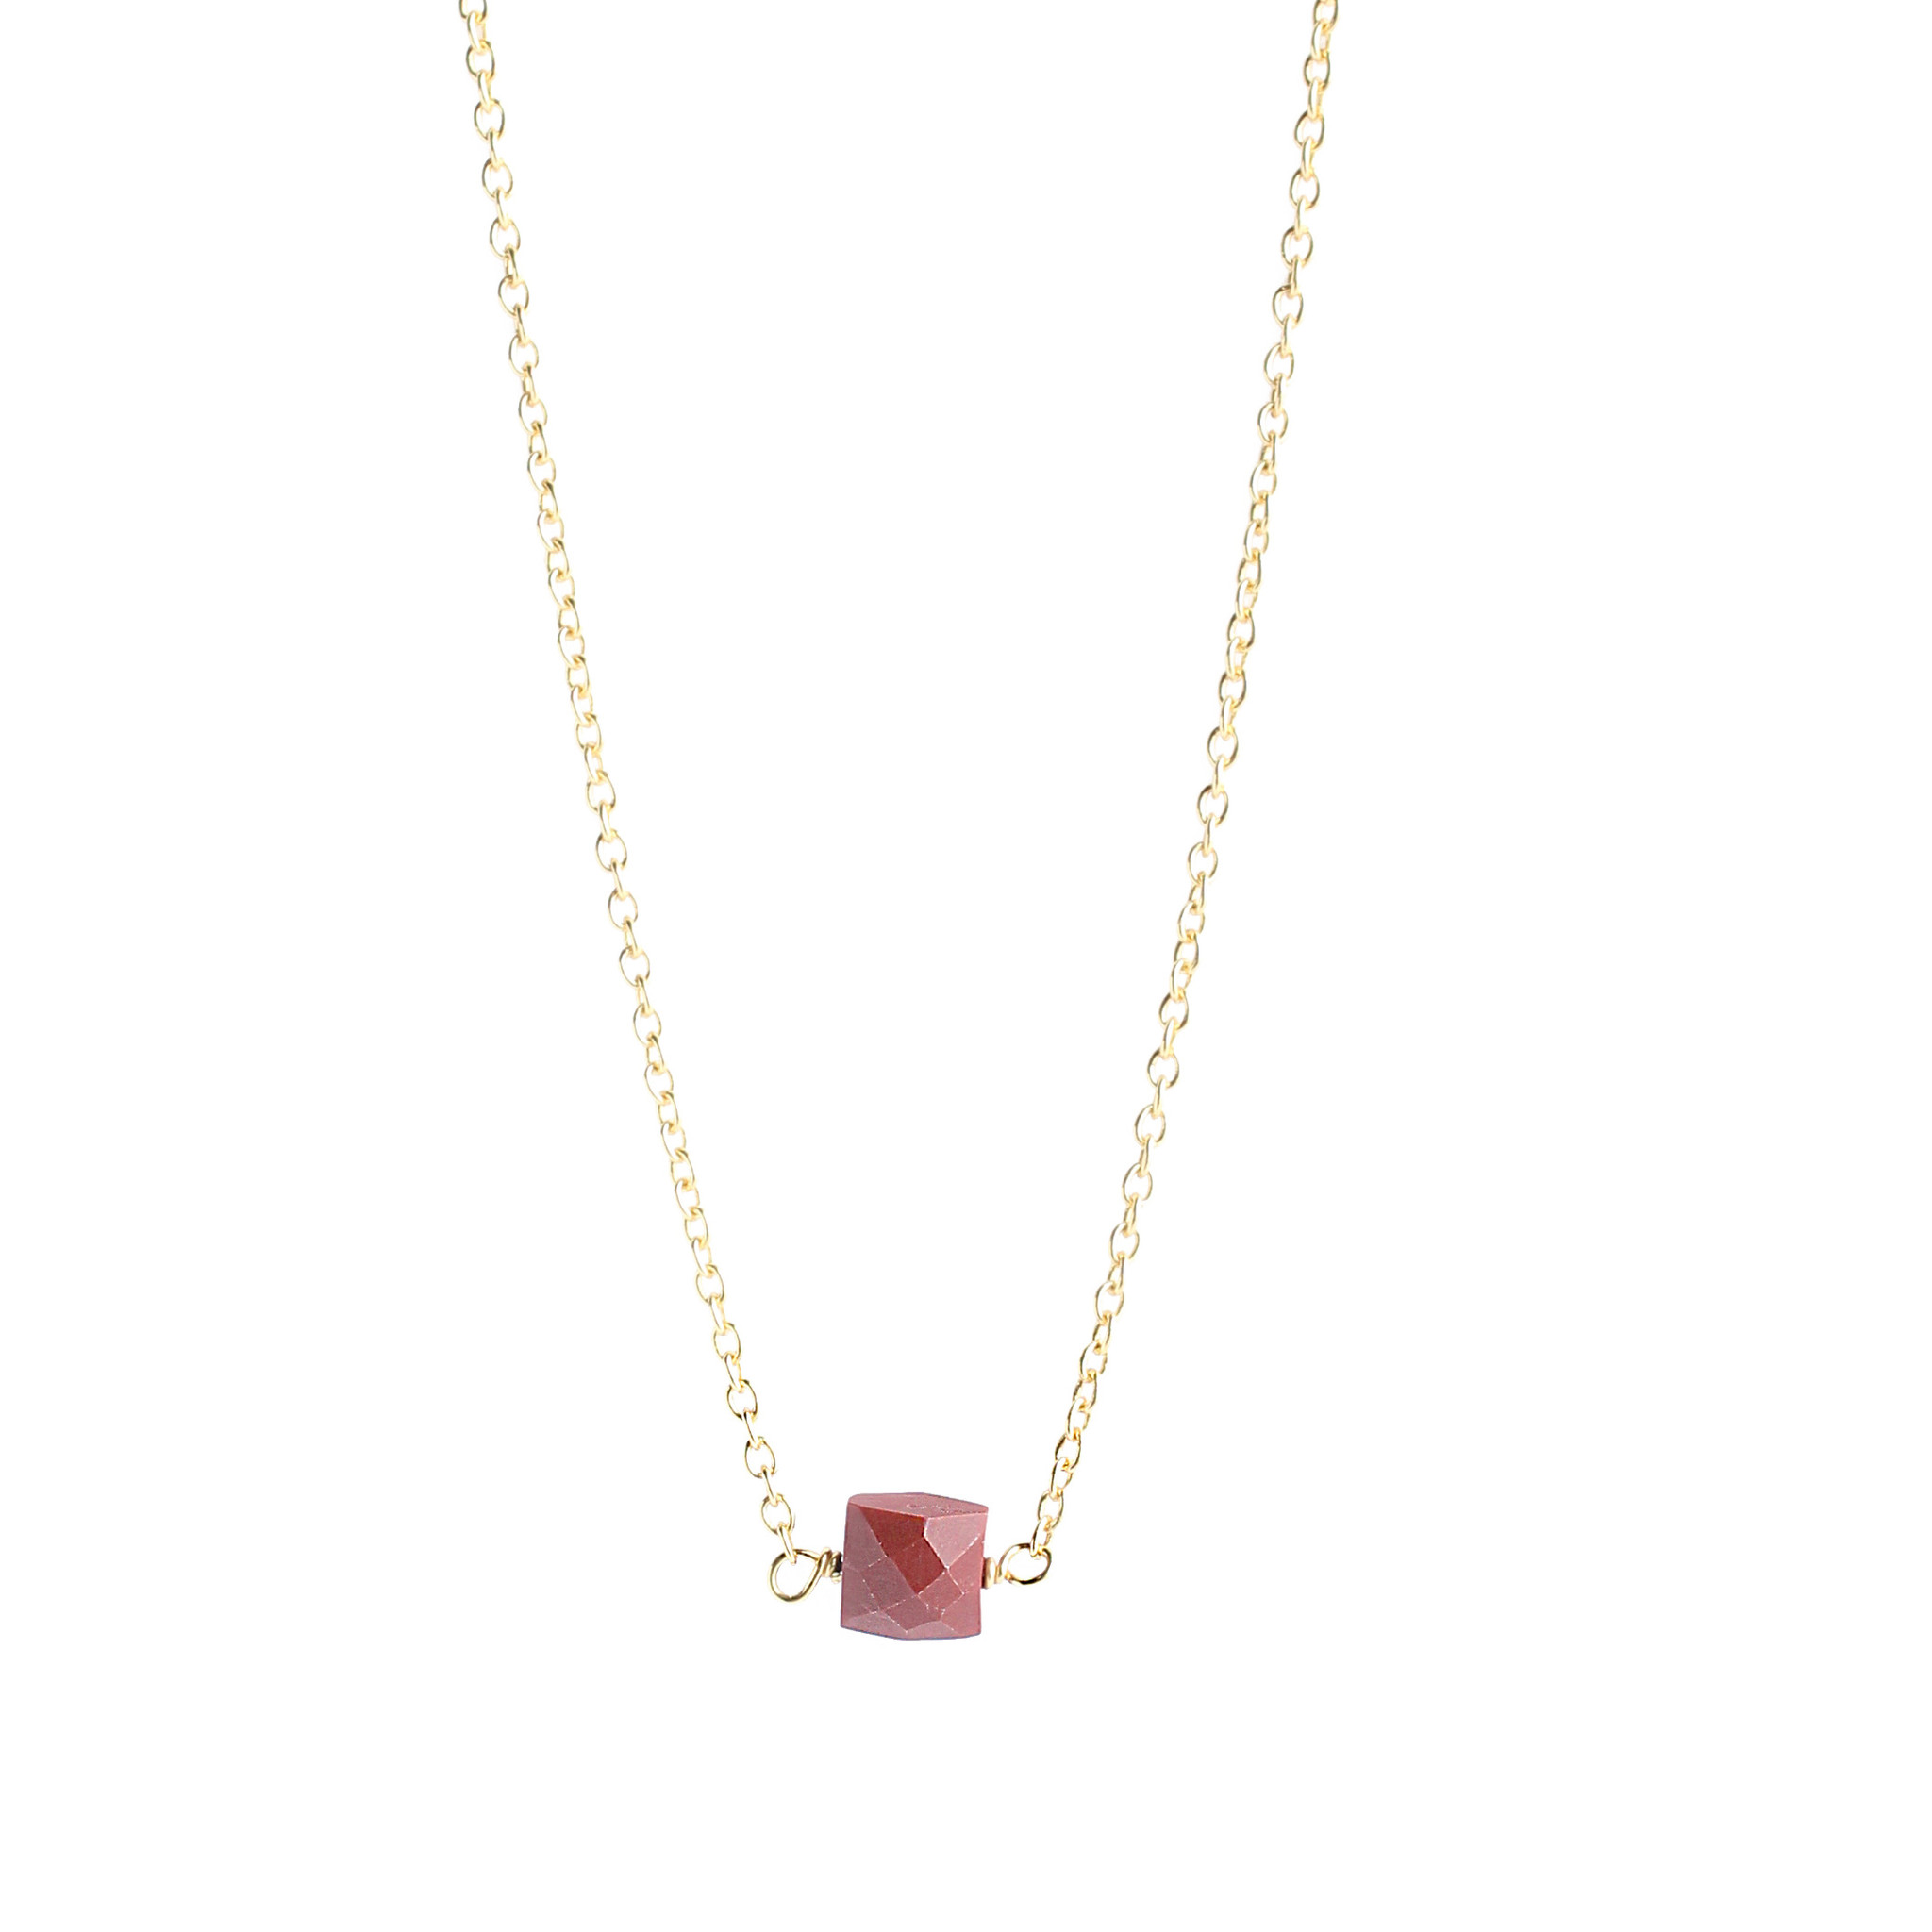 Silver-plated necklace with red Jaspe pendant